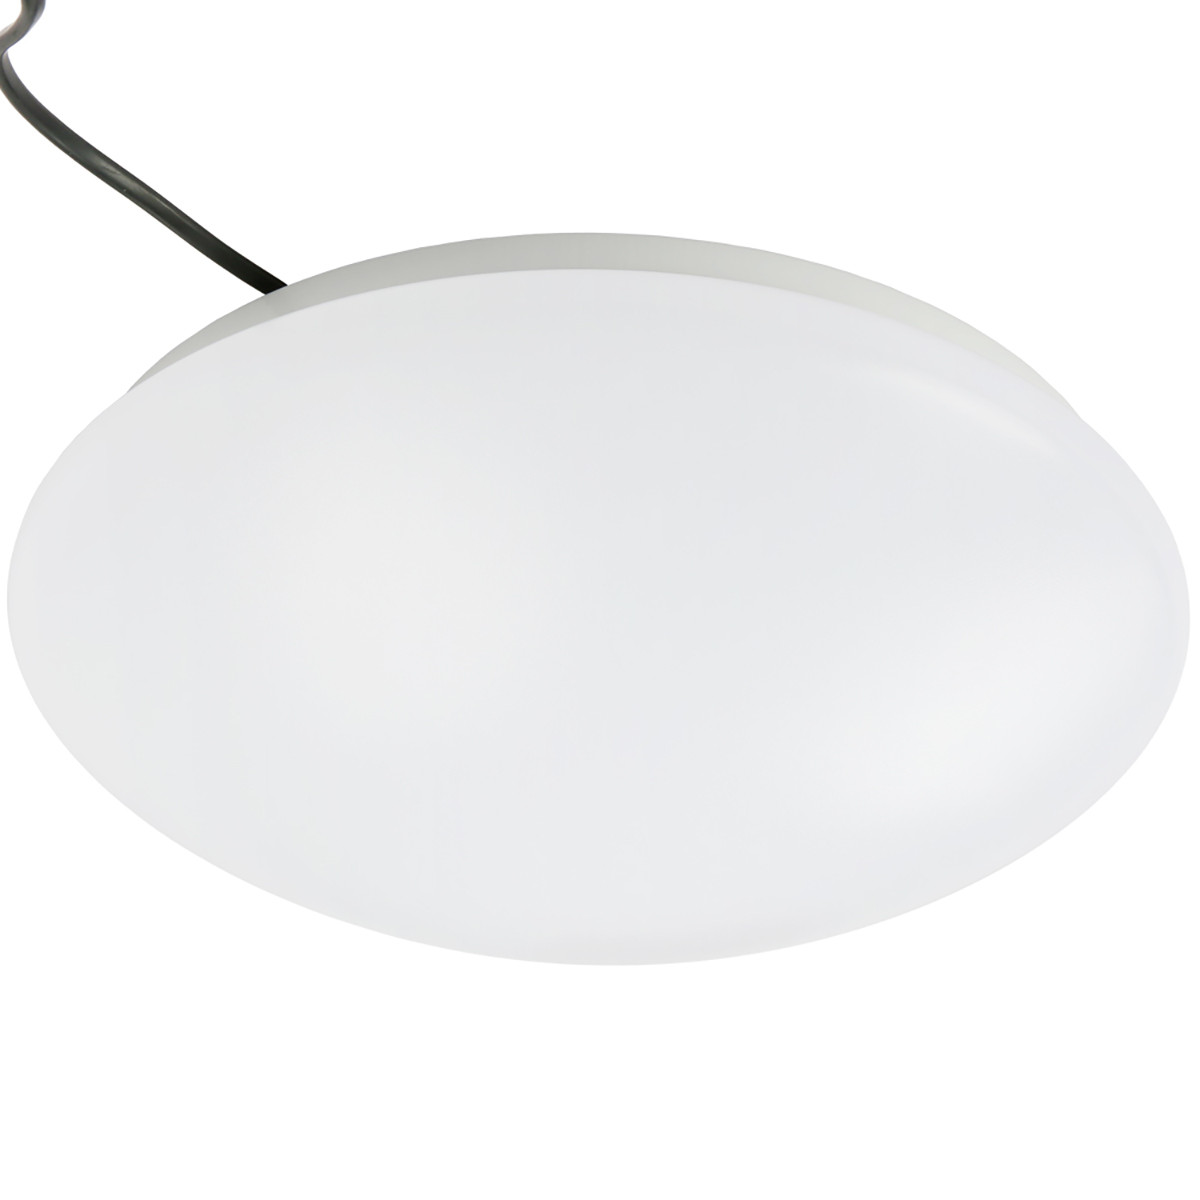 36W 19.68 inch Modern LED Flush Mount Ceiling Light Fixture for Any Room Round Acrylic Shade White Finish Mushroom Shape and CCT changable  with RF control